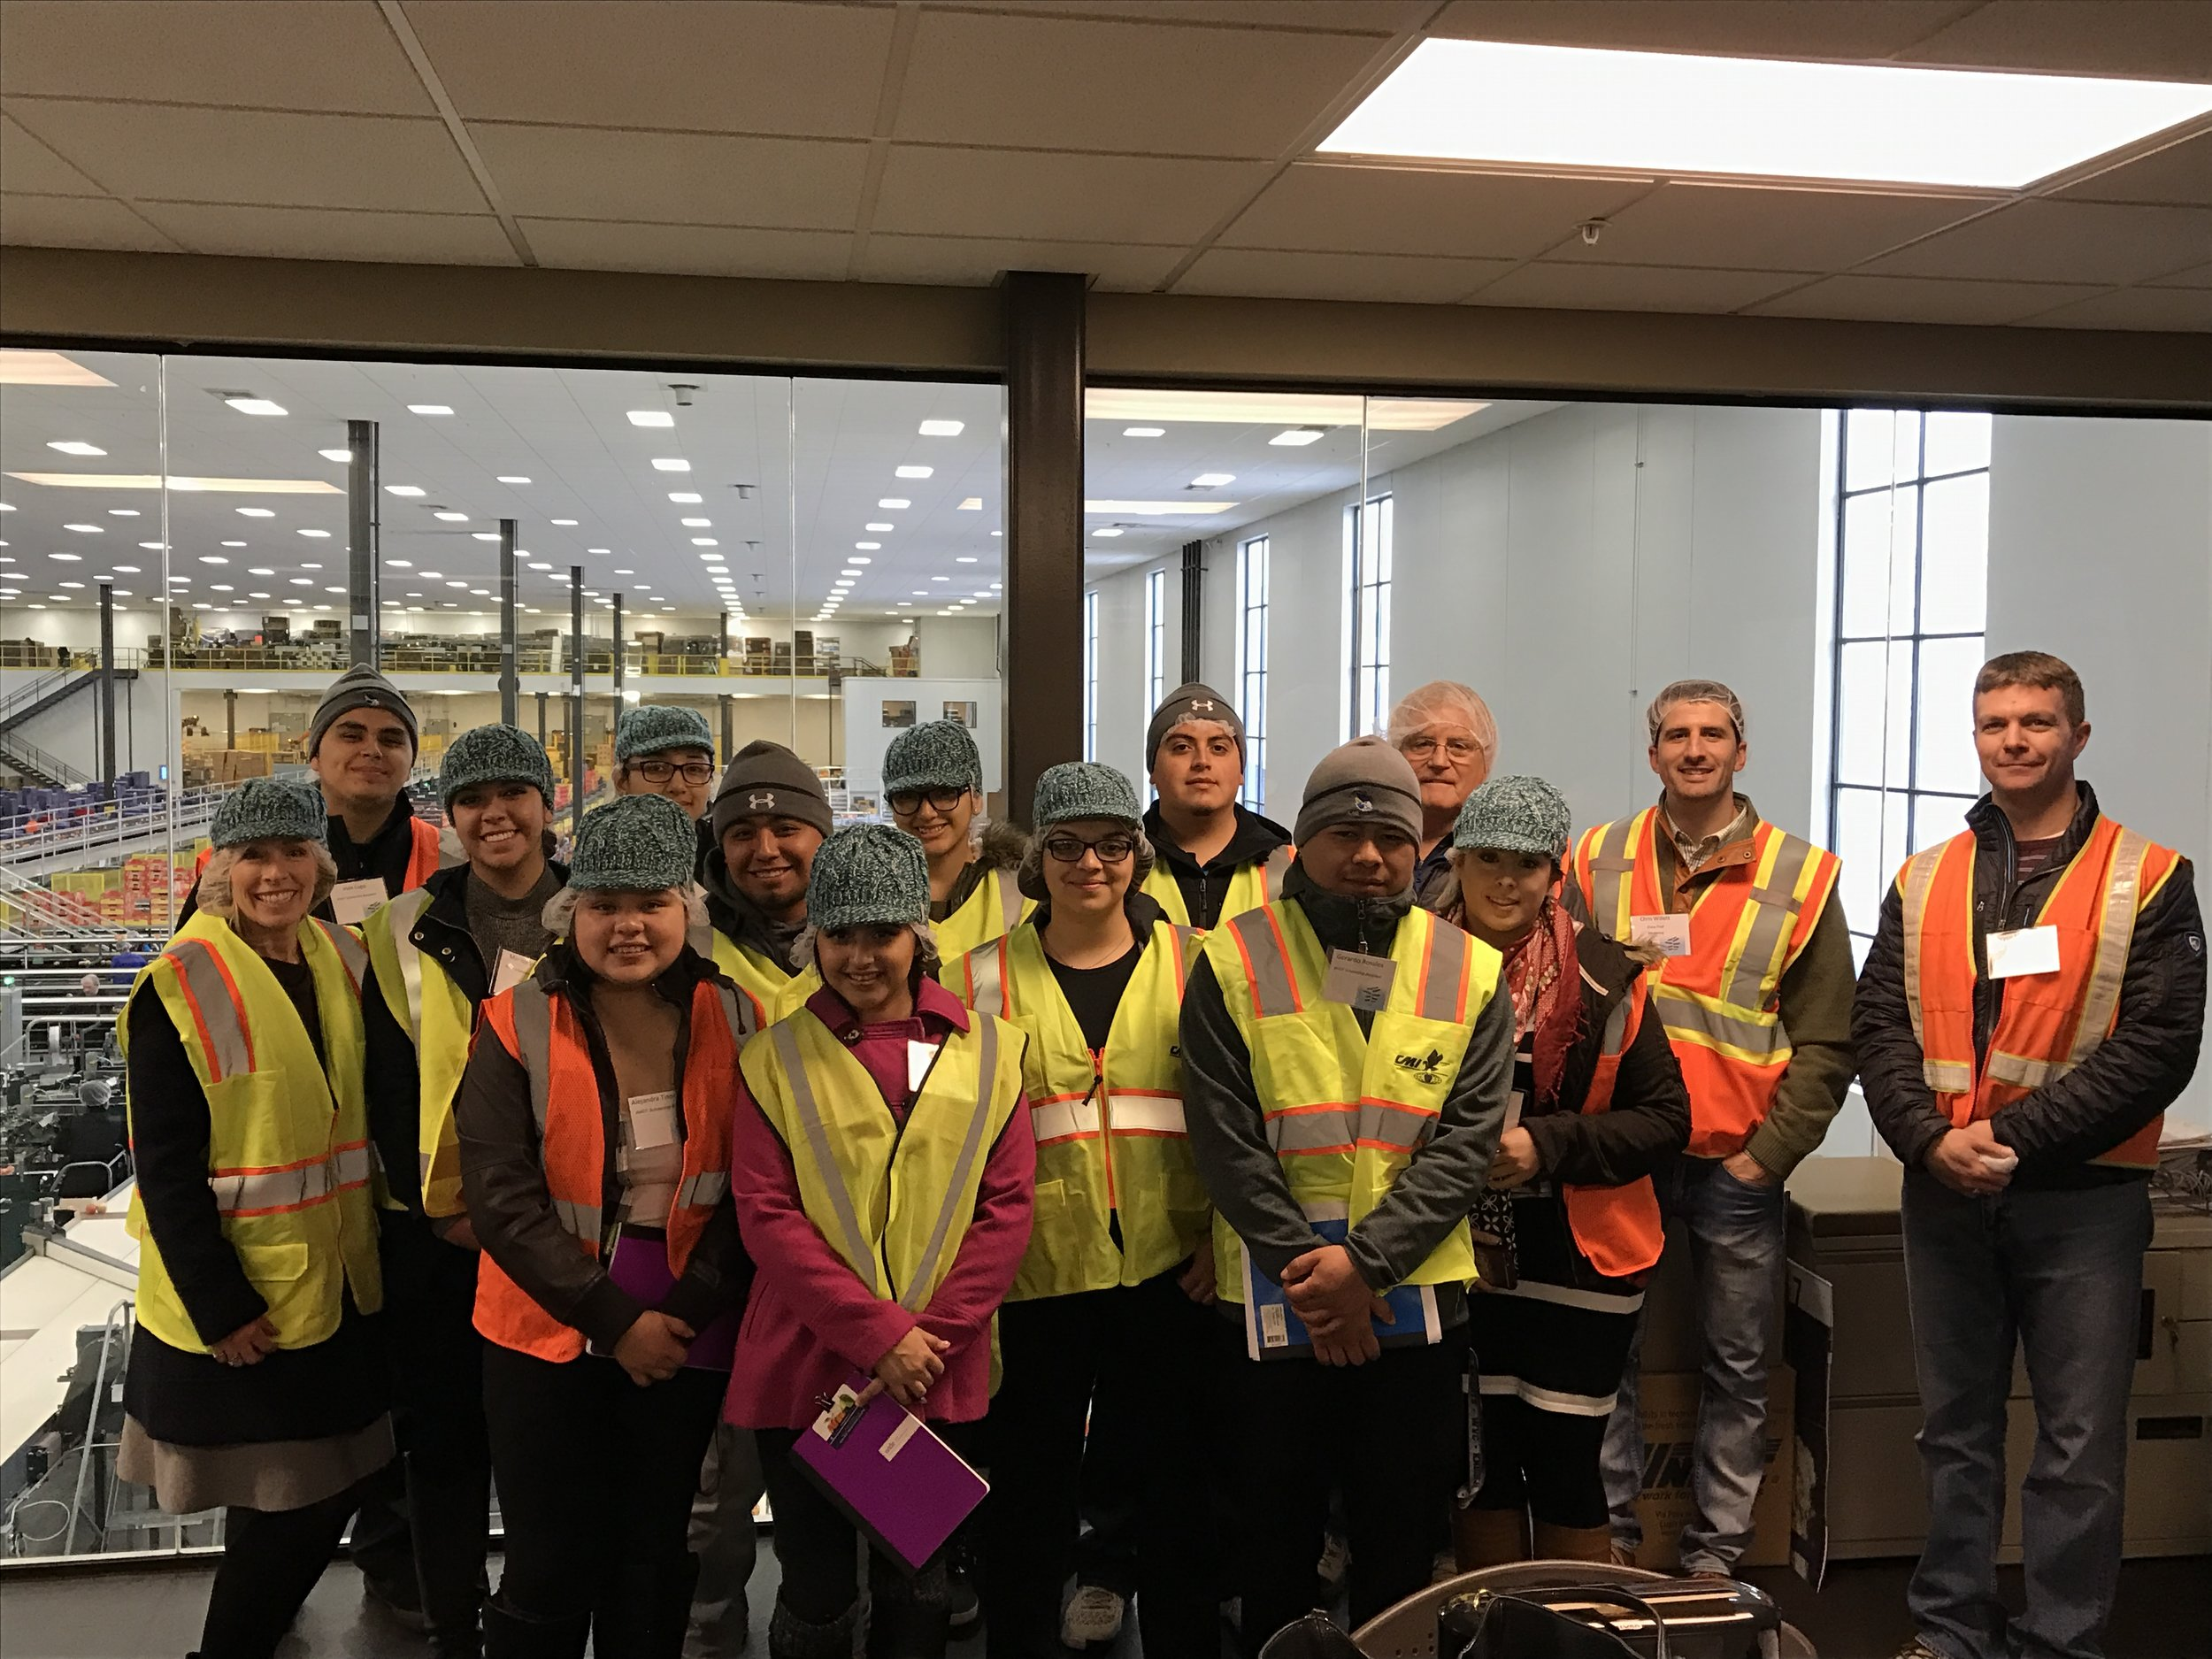 The Wenatchee group touring with Stuart and Byron McDougall at the newest McDougall & Sons facility.